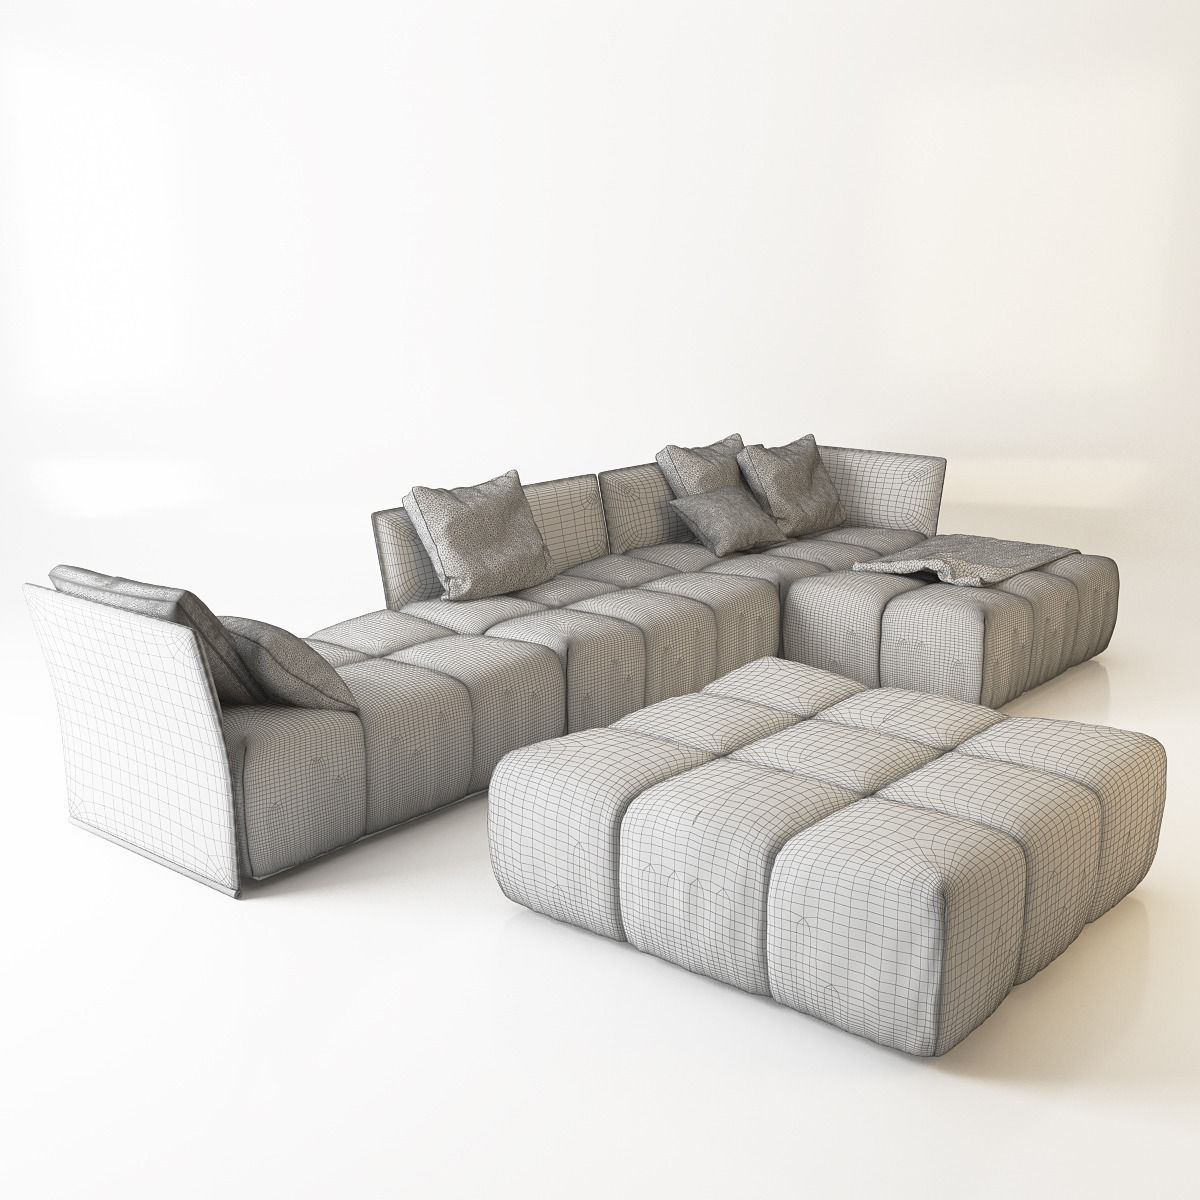 Sofa saba pixel 3d model max obj fbx mtl for Sofa 3d model